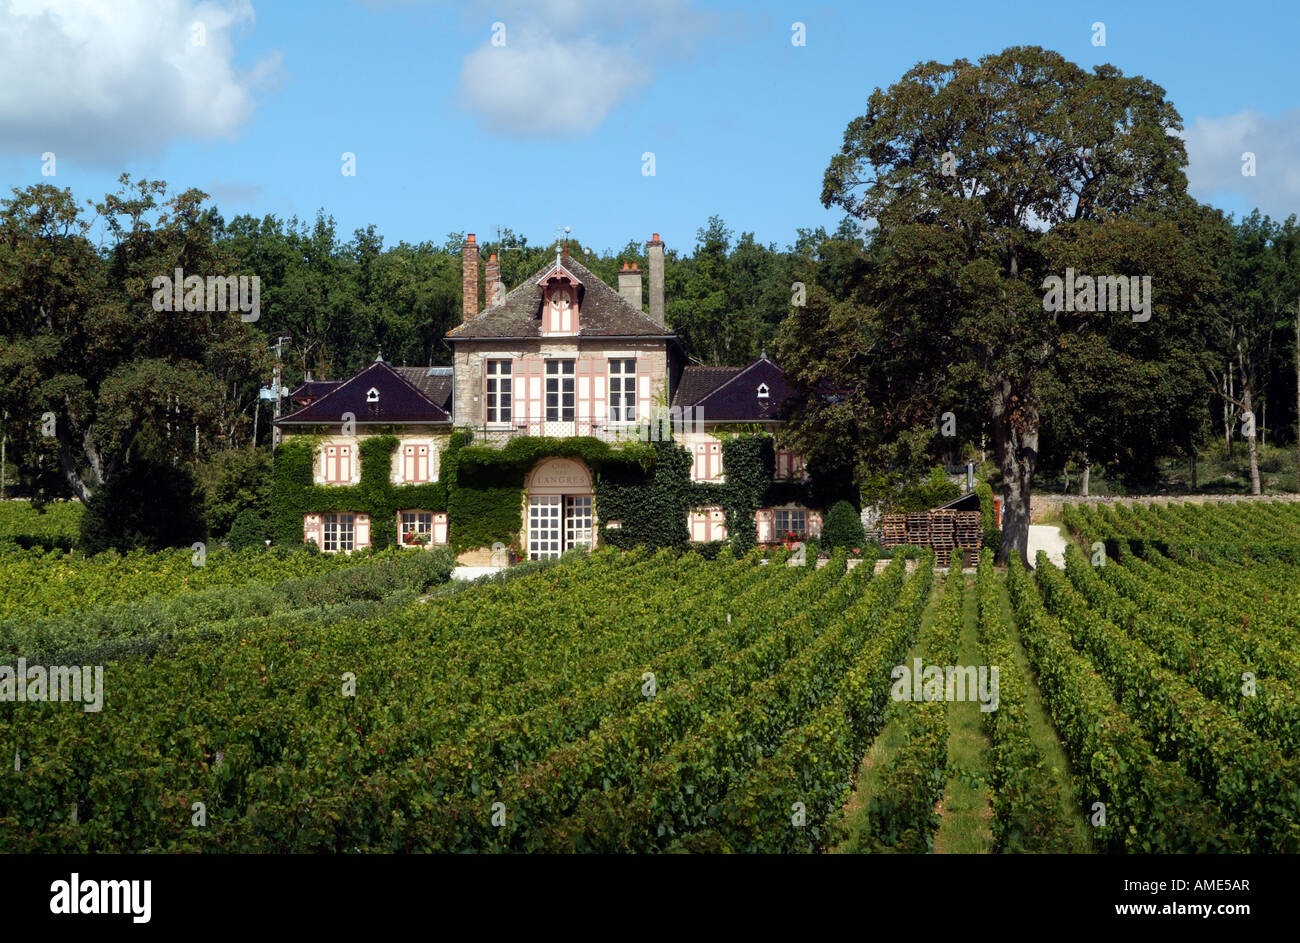 domaine d ardhuy winery and the monopole vineyard clos de langres in stock photo royalty free. Black Bedroom Furniture Sets. Home Design Ideas